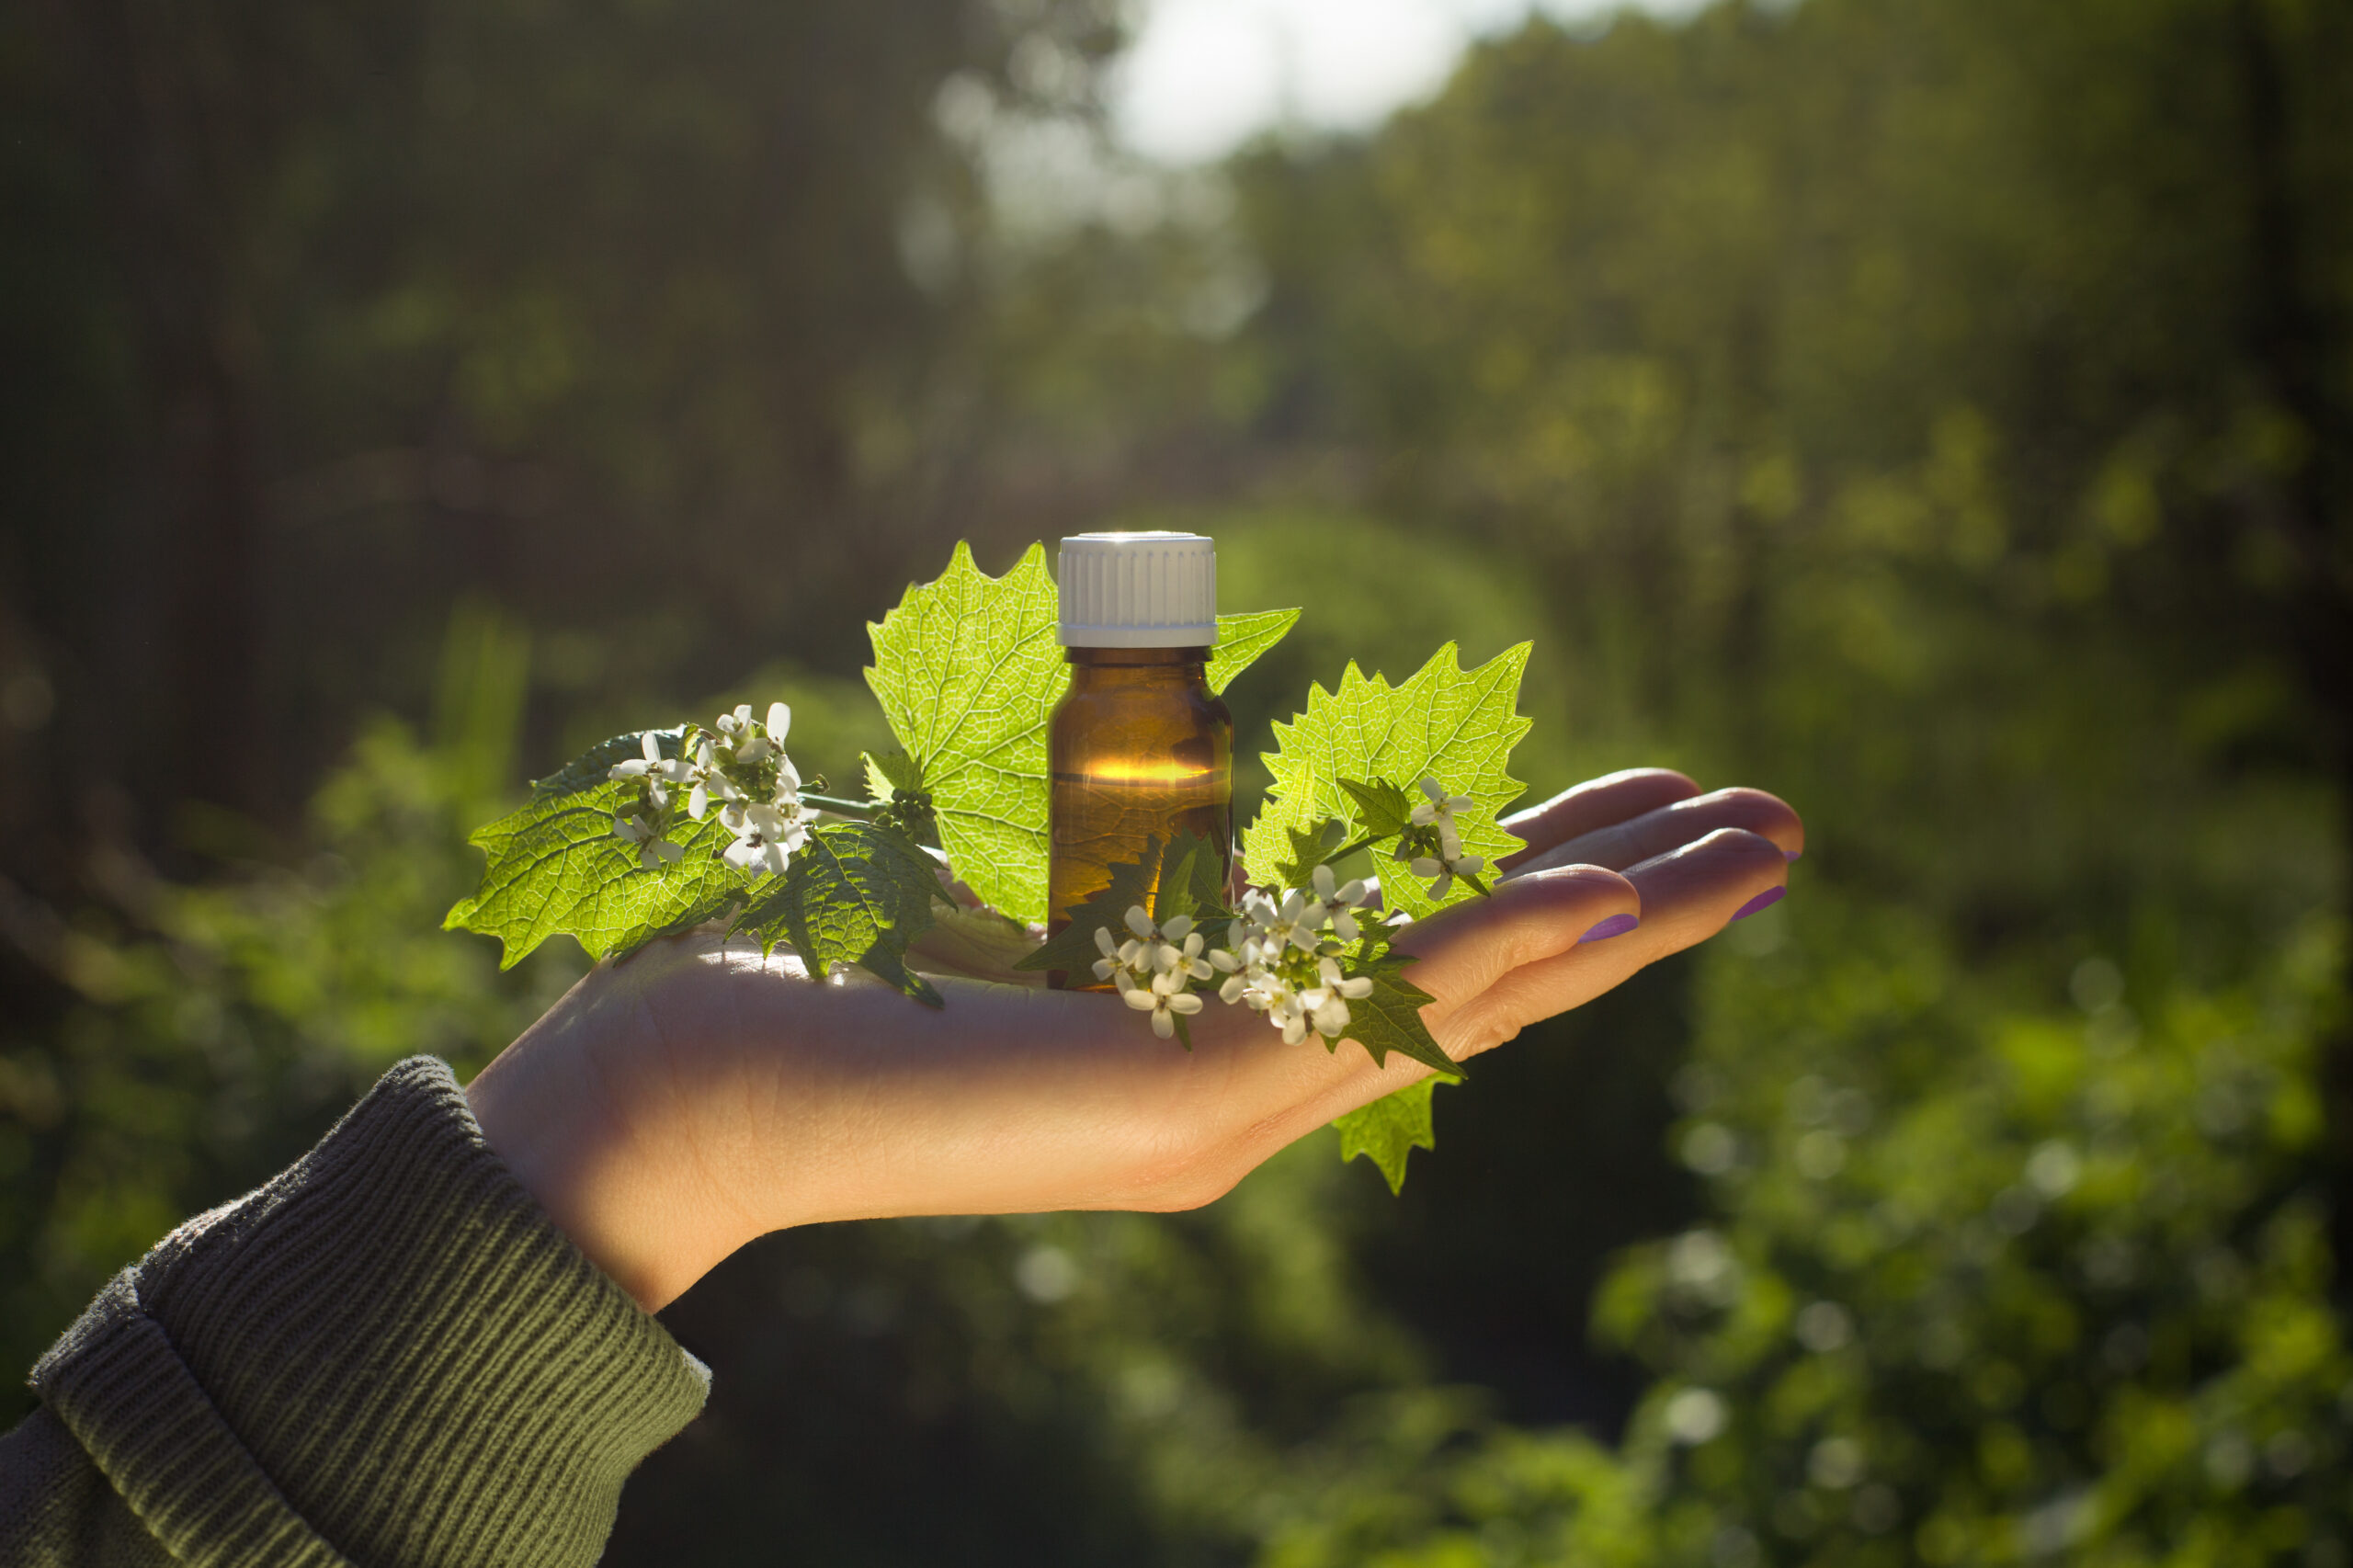 Hand with aroma oil in bottle. Bach flower essence and blooming nettle.